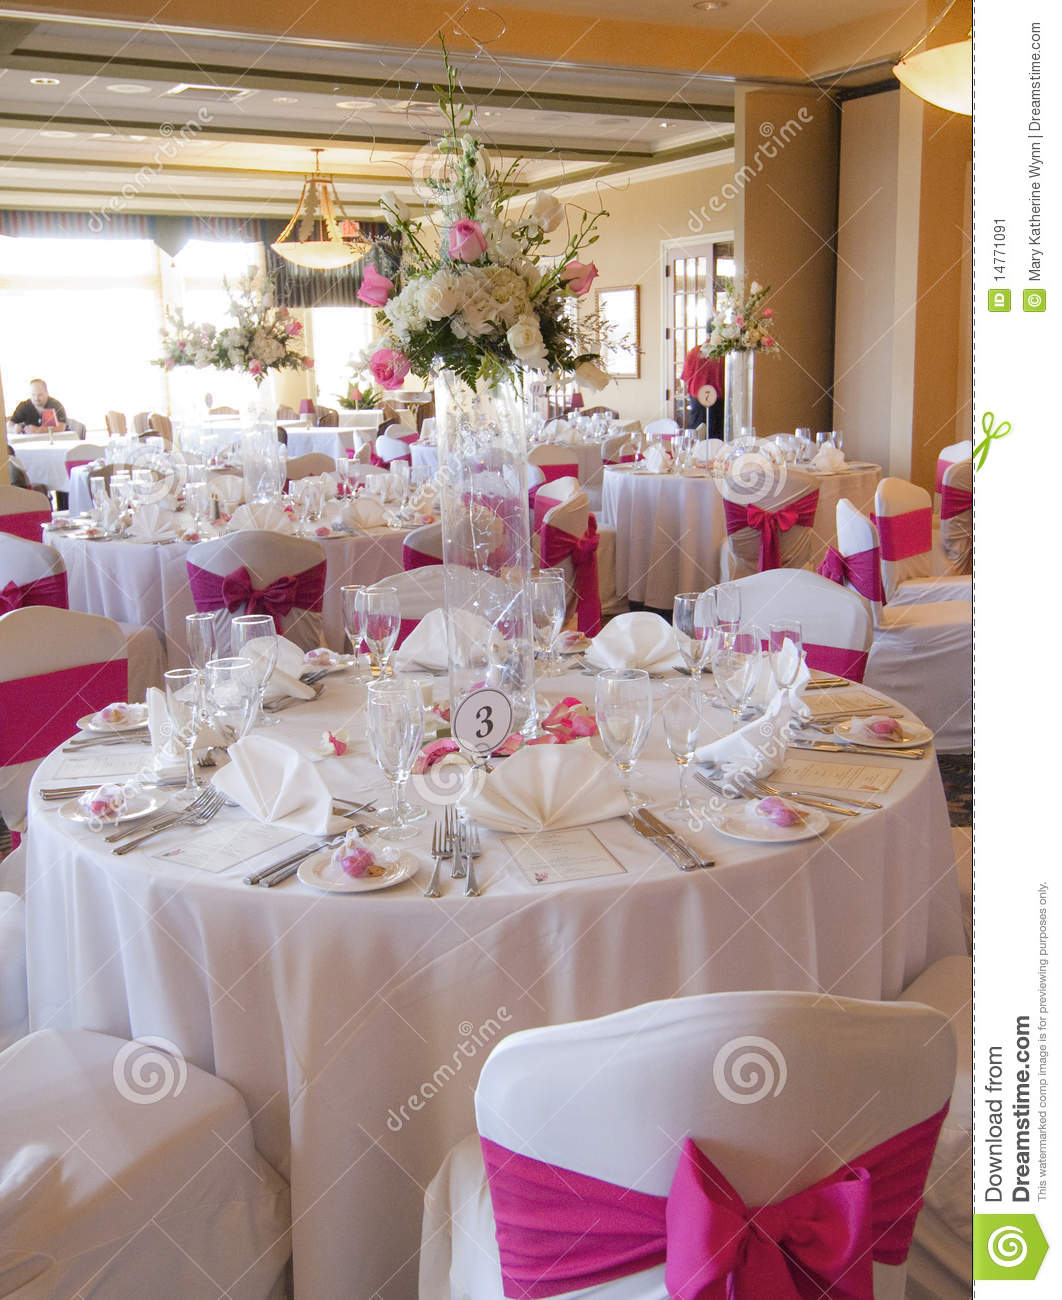 Wedding Banquet: Wedding Reception Party Venue Stock Image